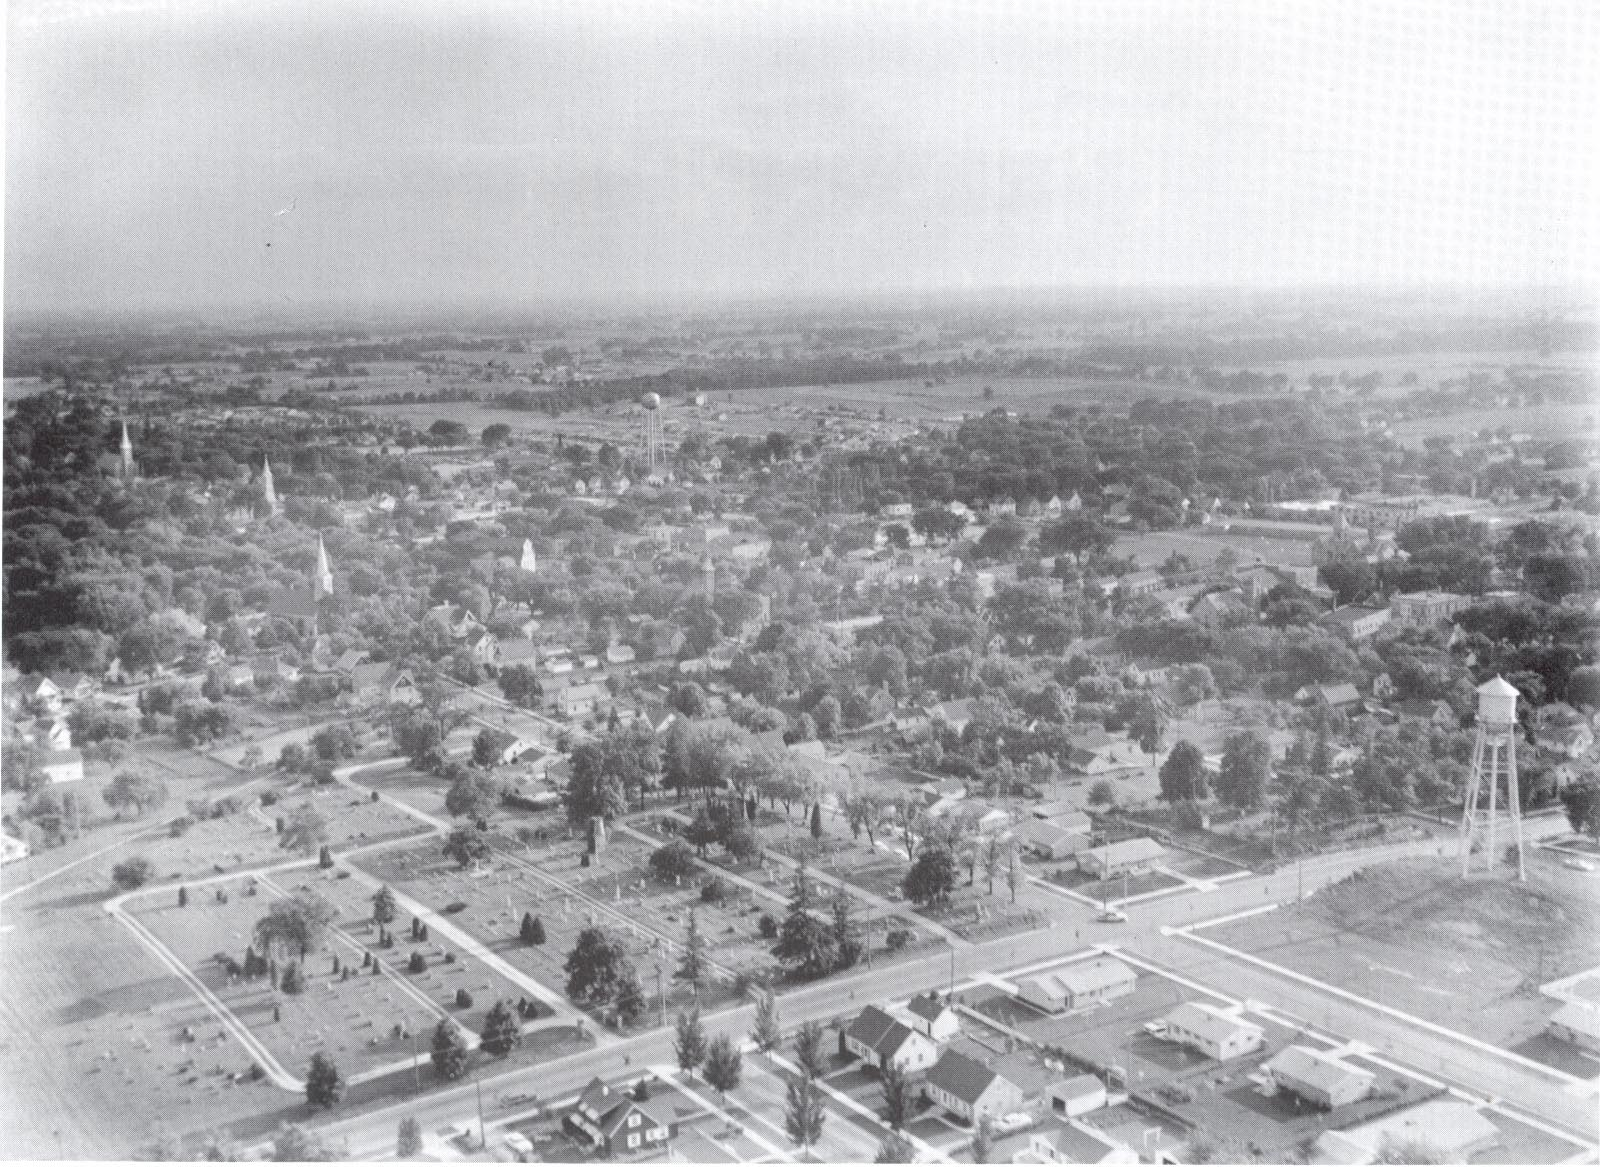 Cedarburg's principal landmarks, the 5-story grist mill, the Lincoln Building, various churches, and the old water tower are all visible in this period aerial photograph.